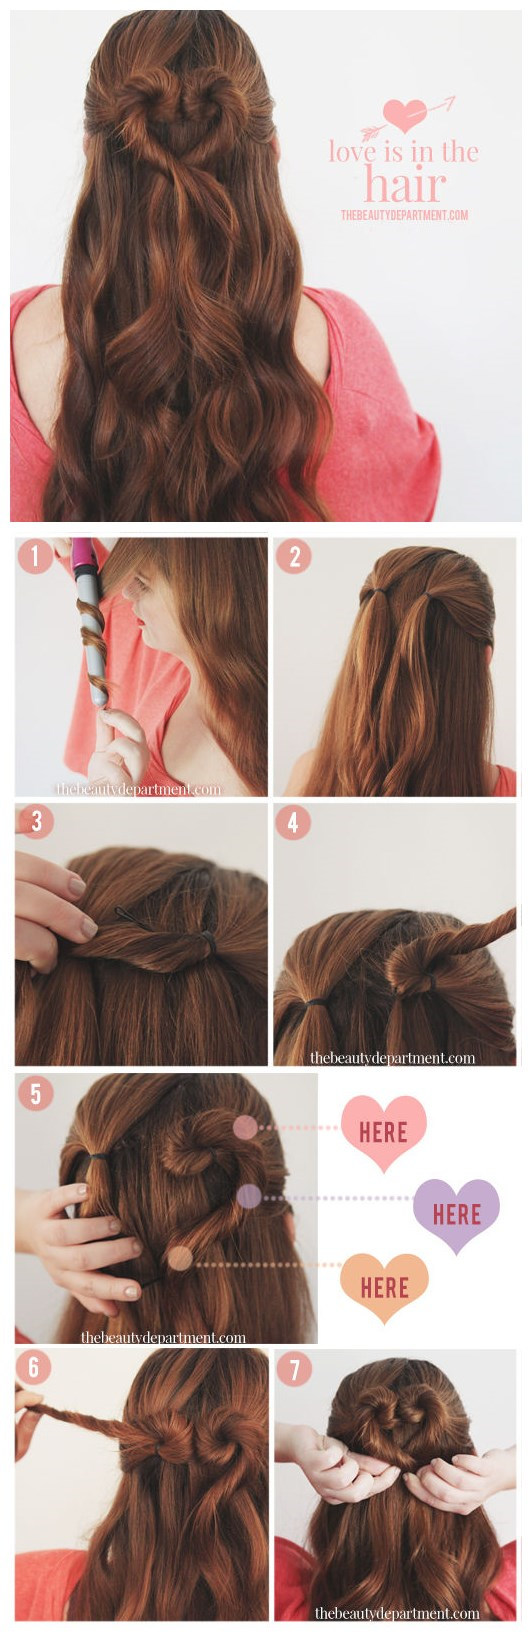 Updo tutorial: Heart Bun Updo